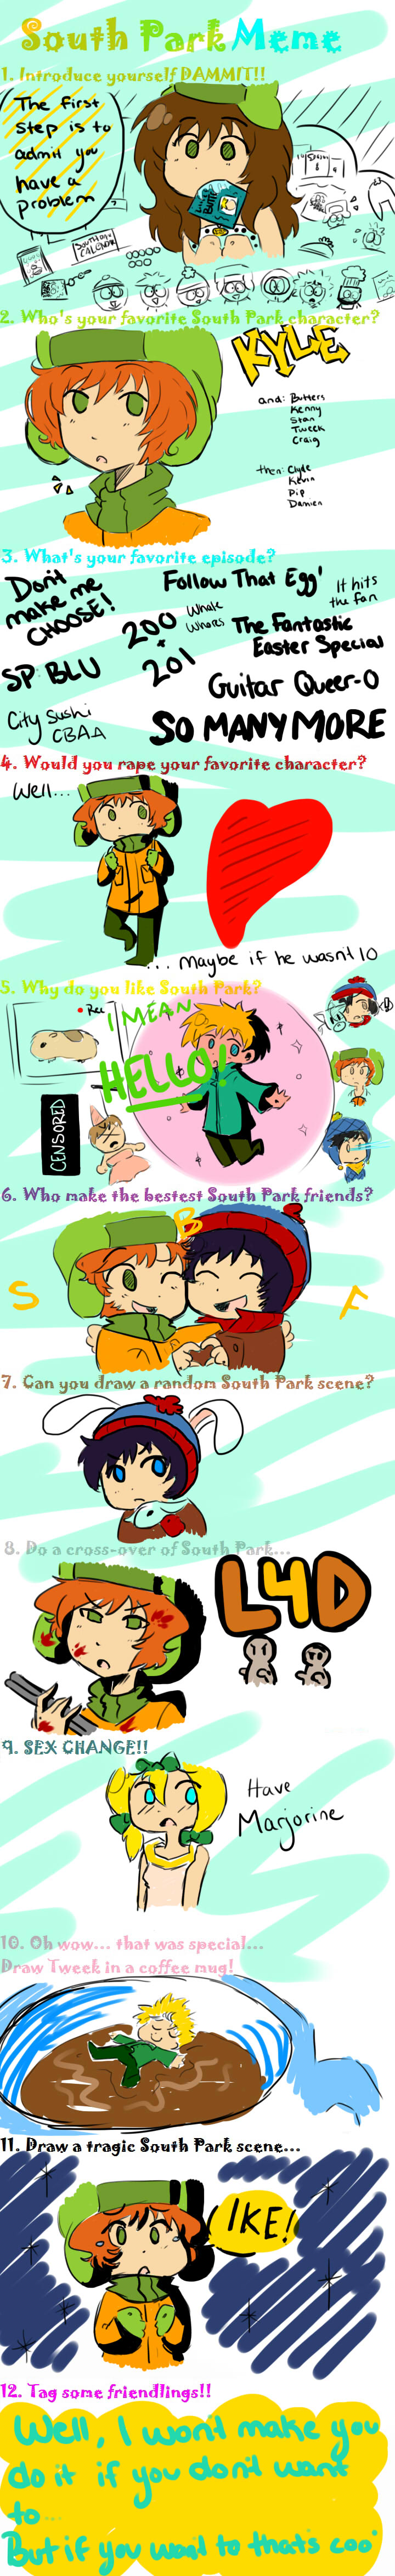 another south park meme by ocean0413 on deviantart